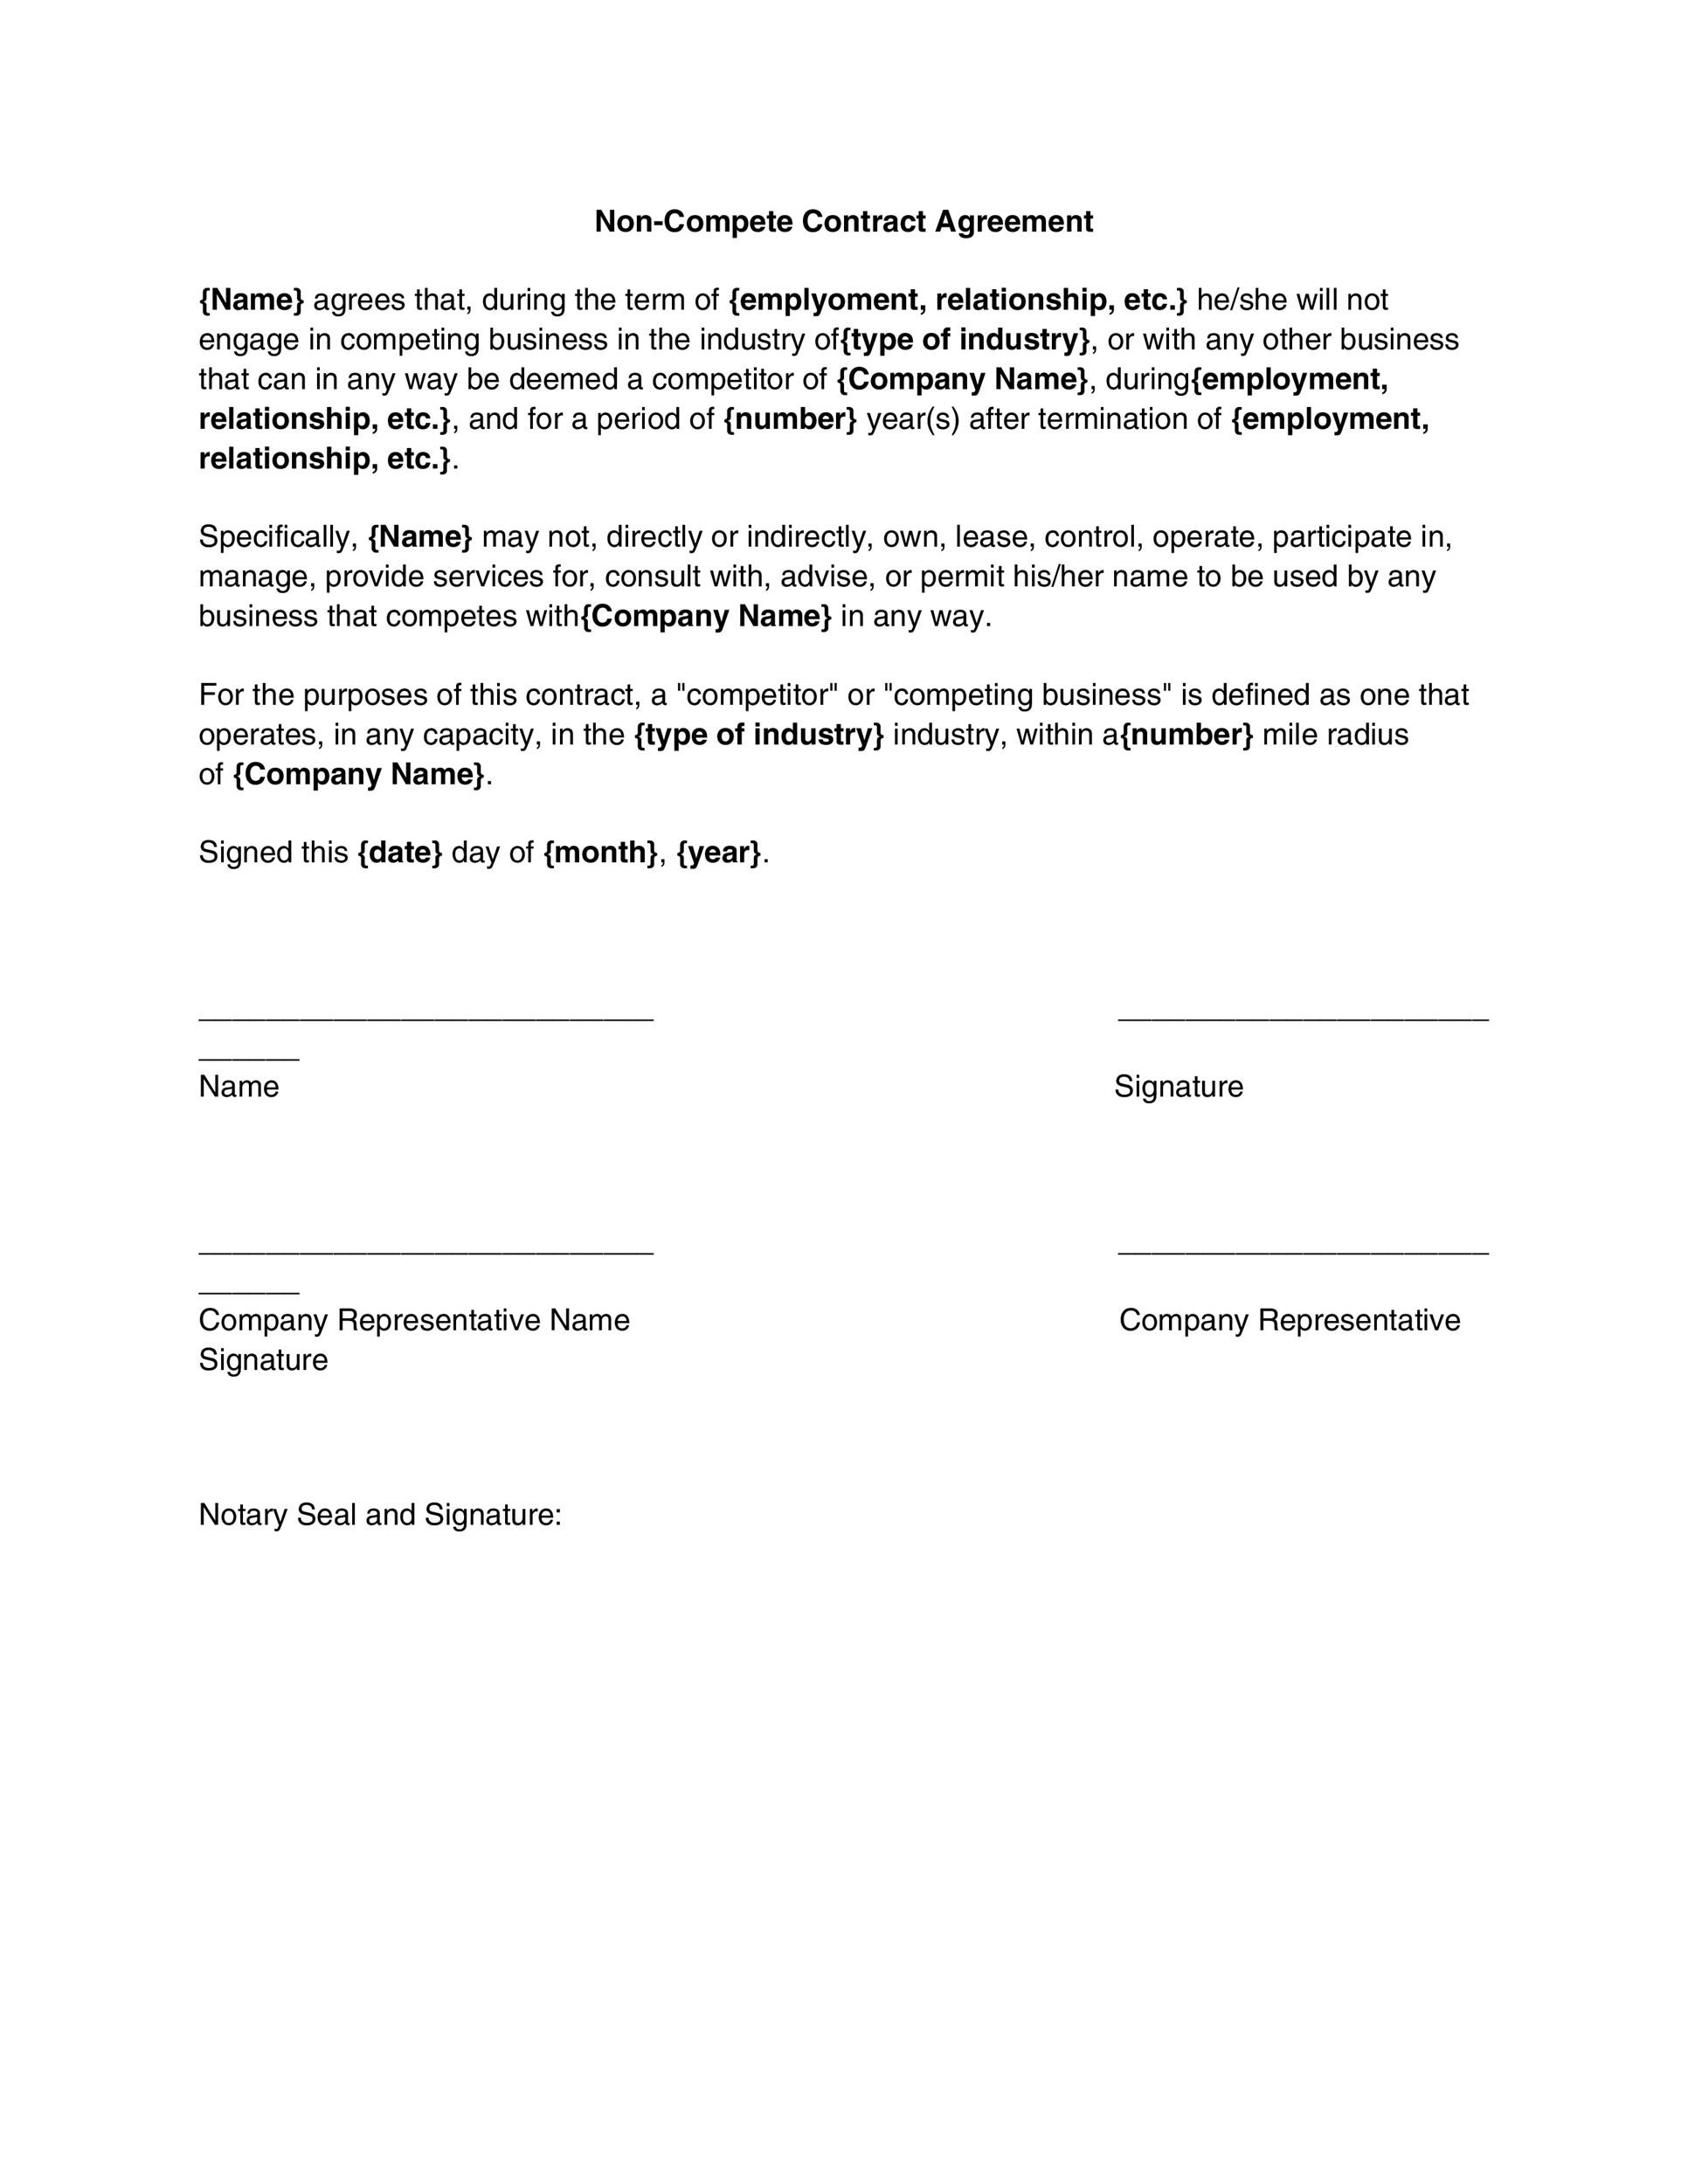 39 Readytouse NonCompete Agreement Templates Template Lab – Job Contract Template